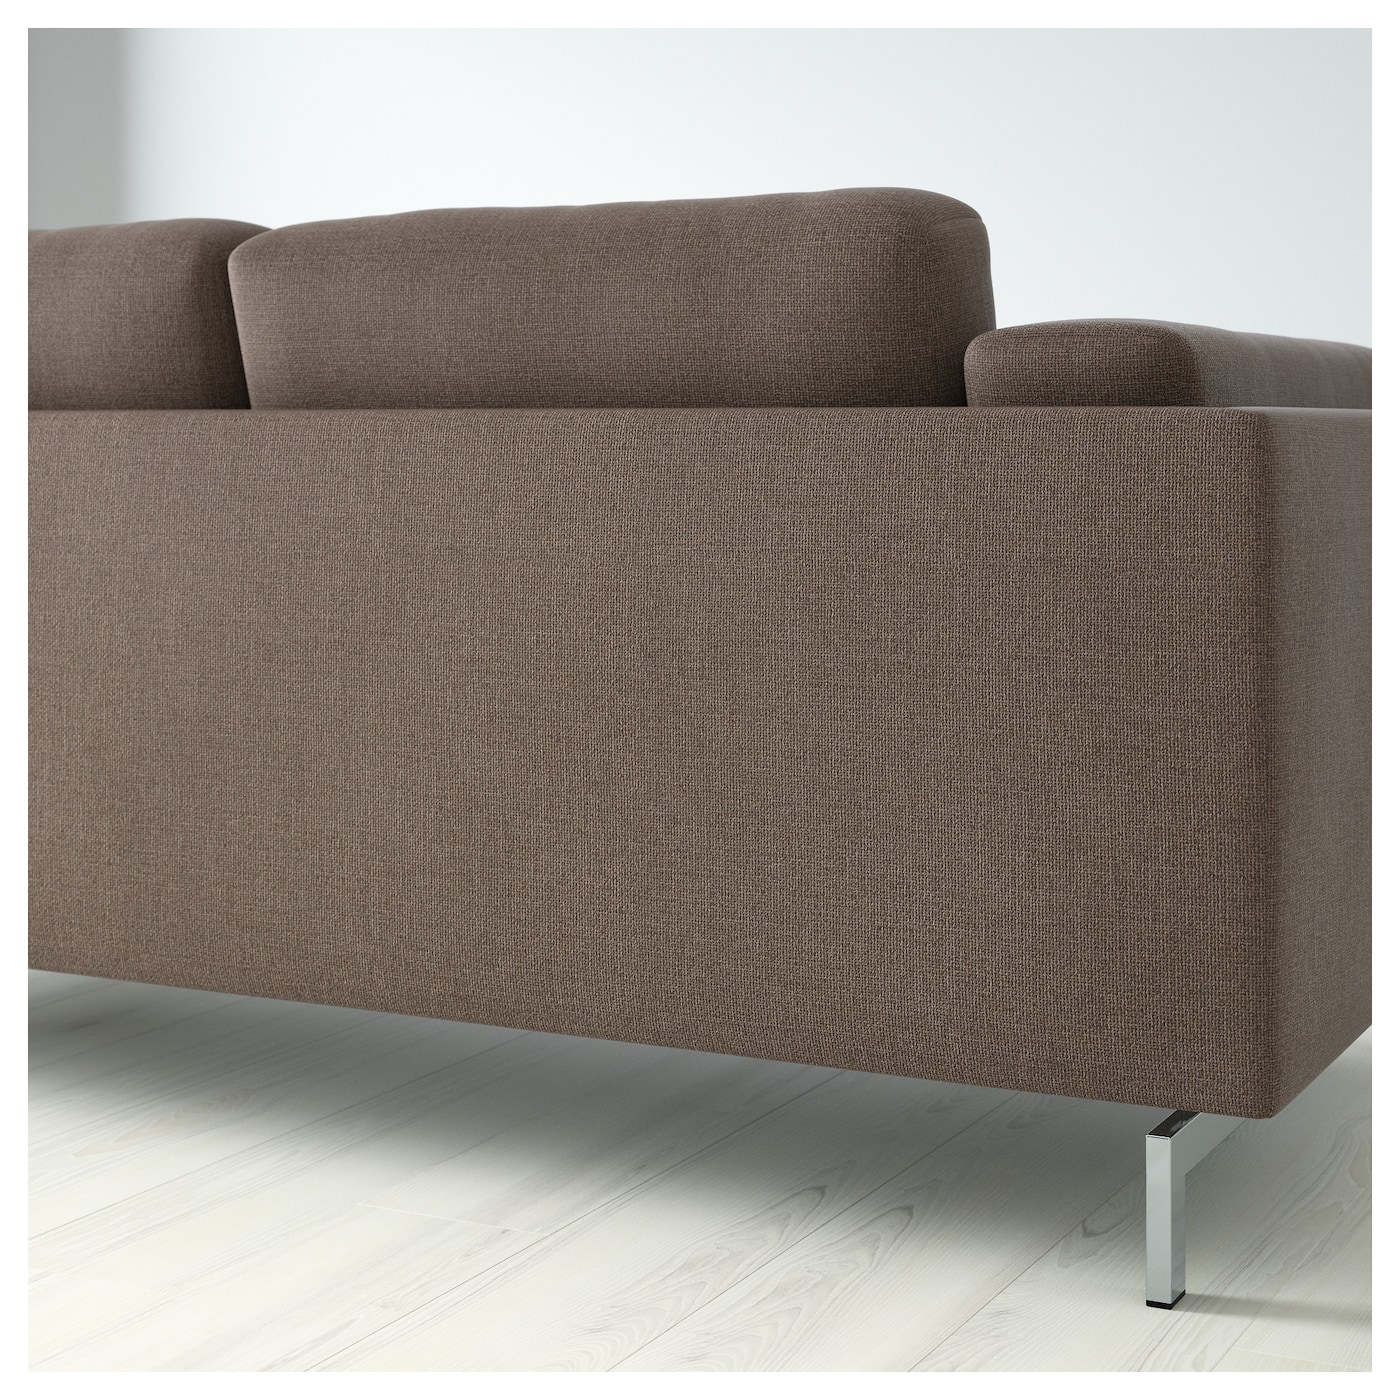 Nockeby two seat sofa w chaise longue left ten brown for Sofa nockeby